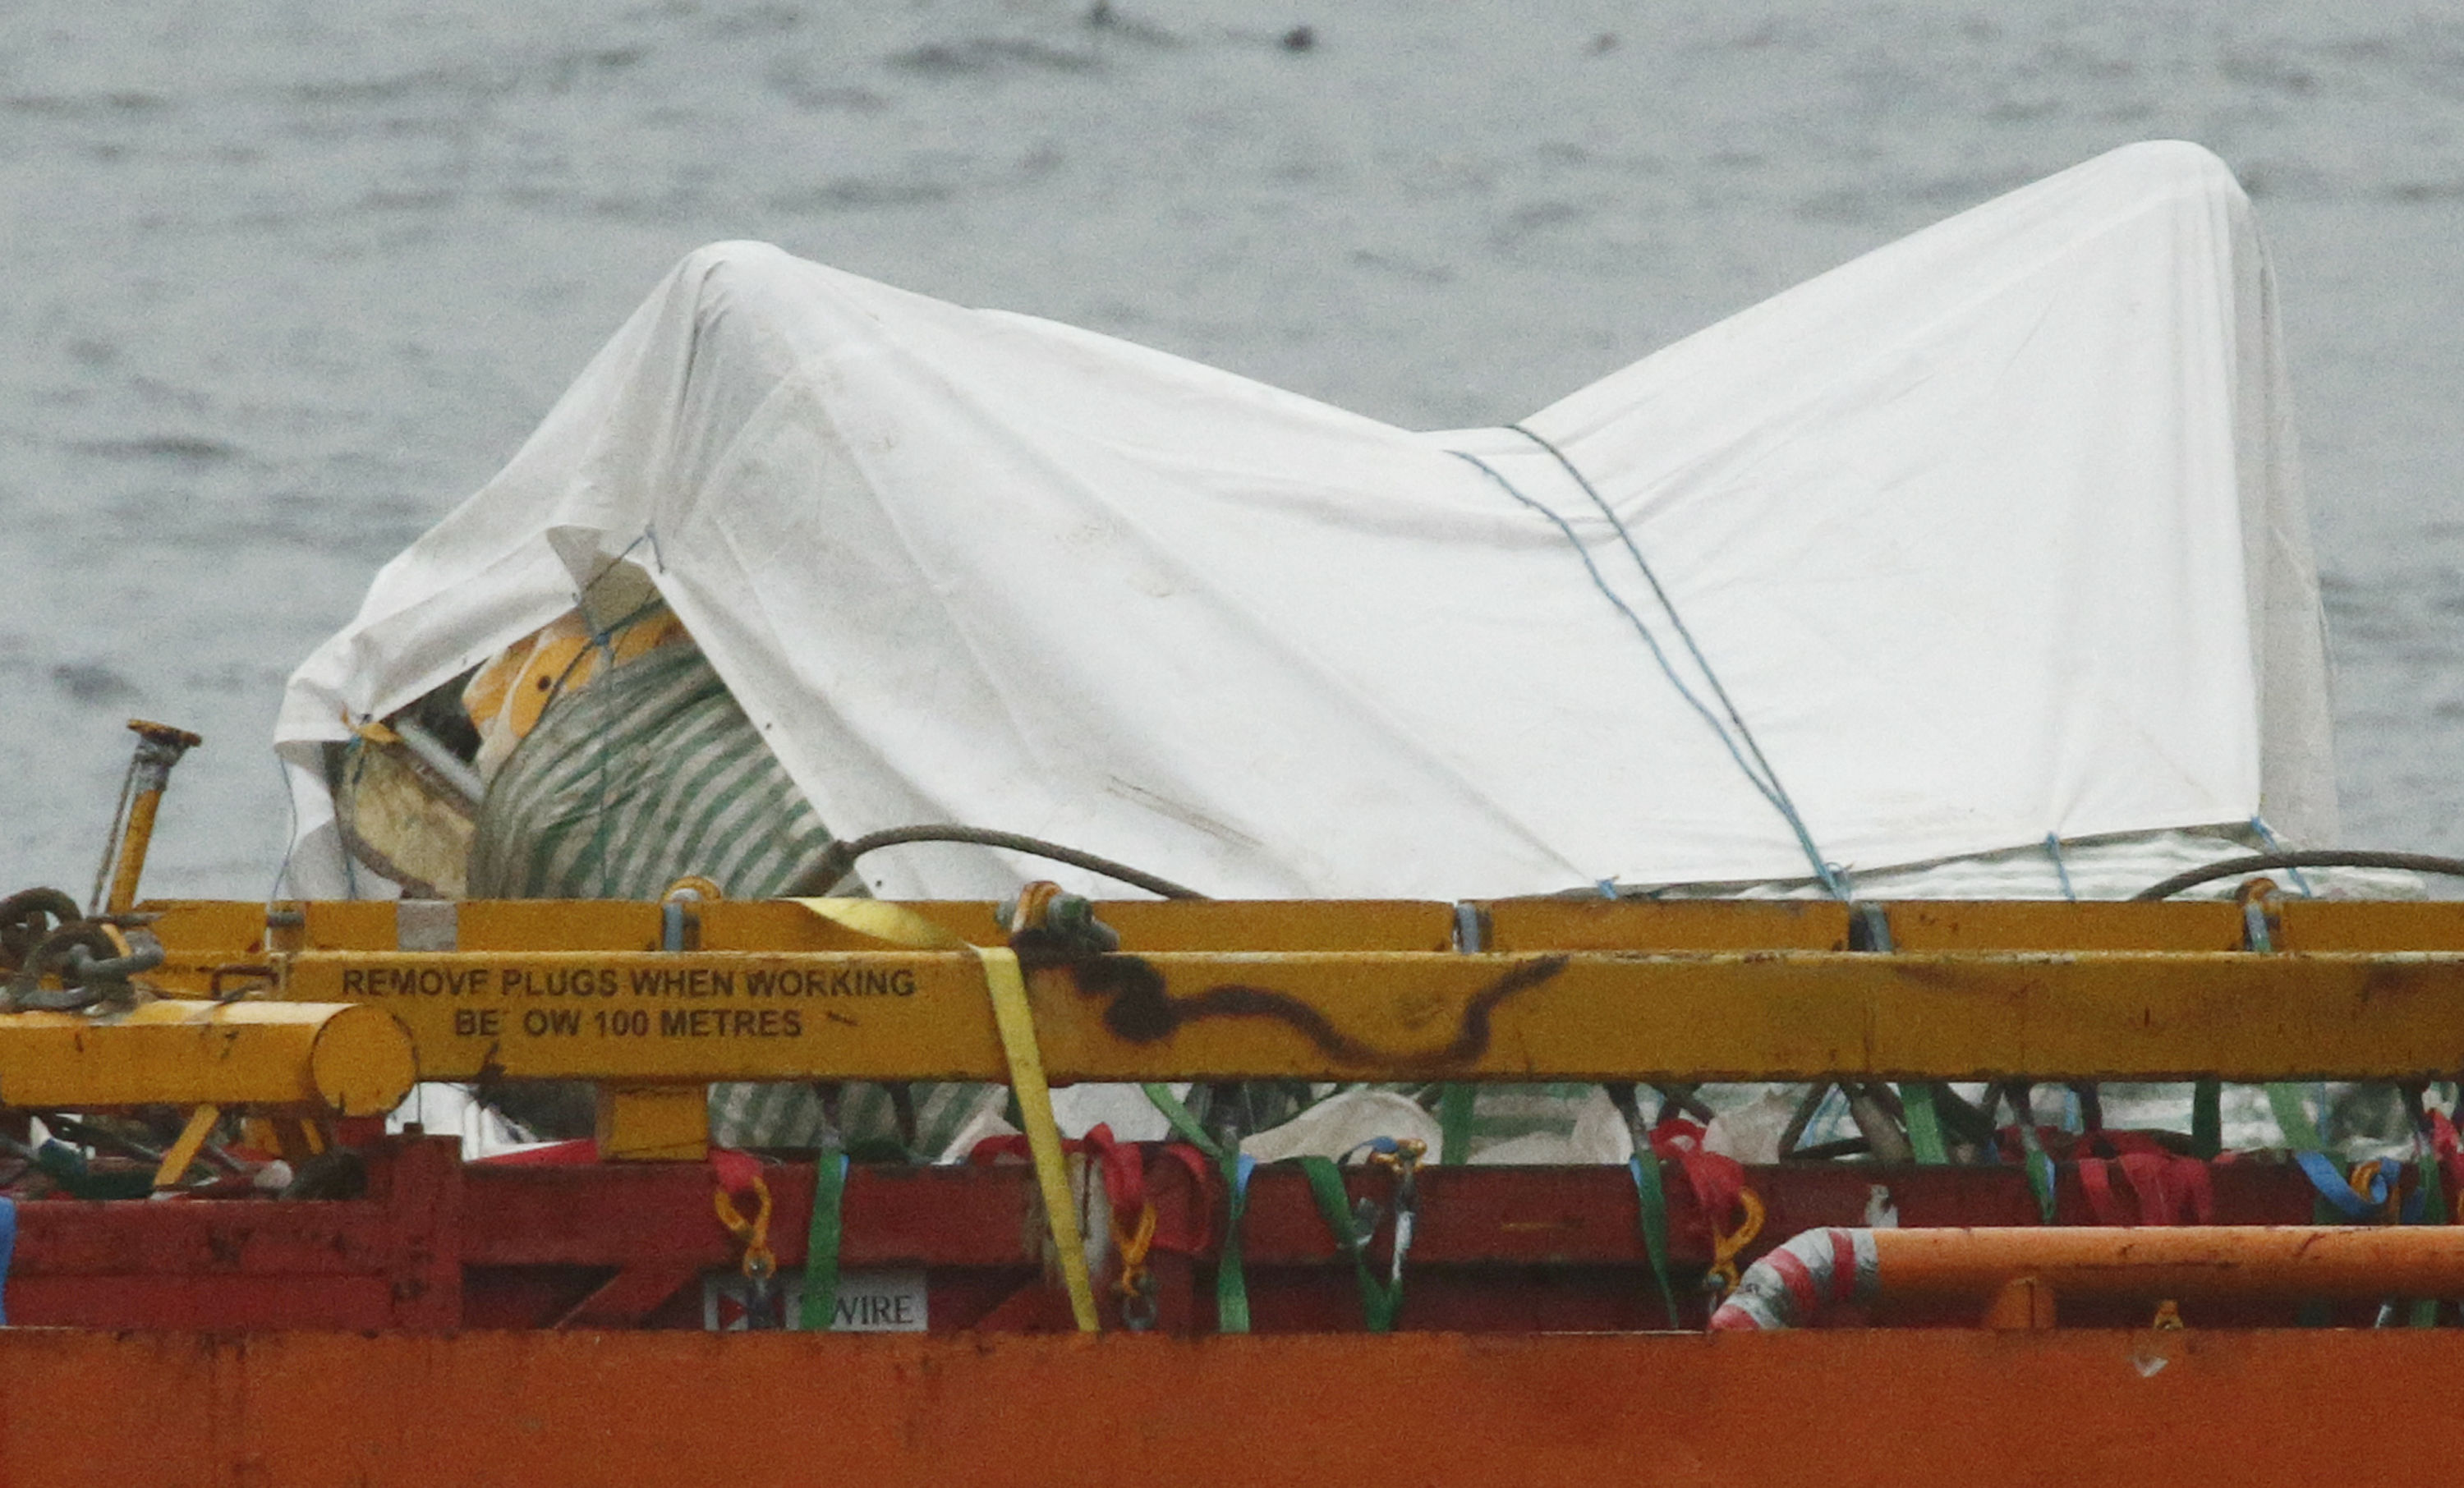 The Super Puma helicopter plunged into the North Sea killing four oil workers off the coast of Shetland.